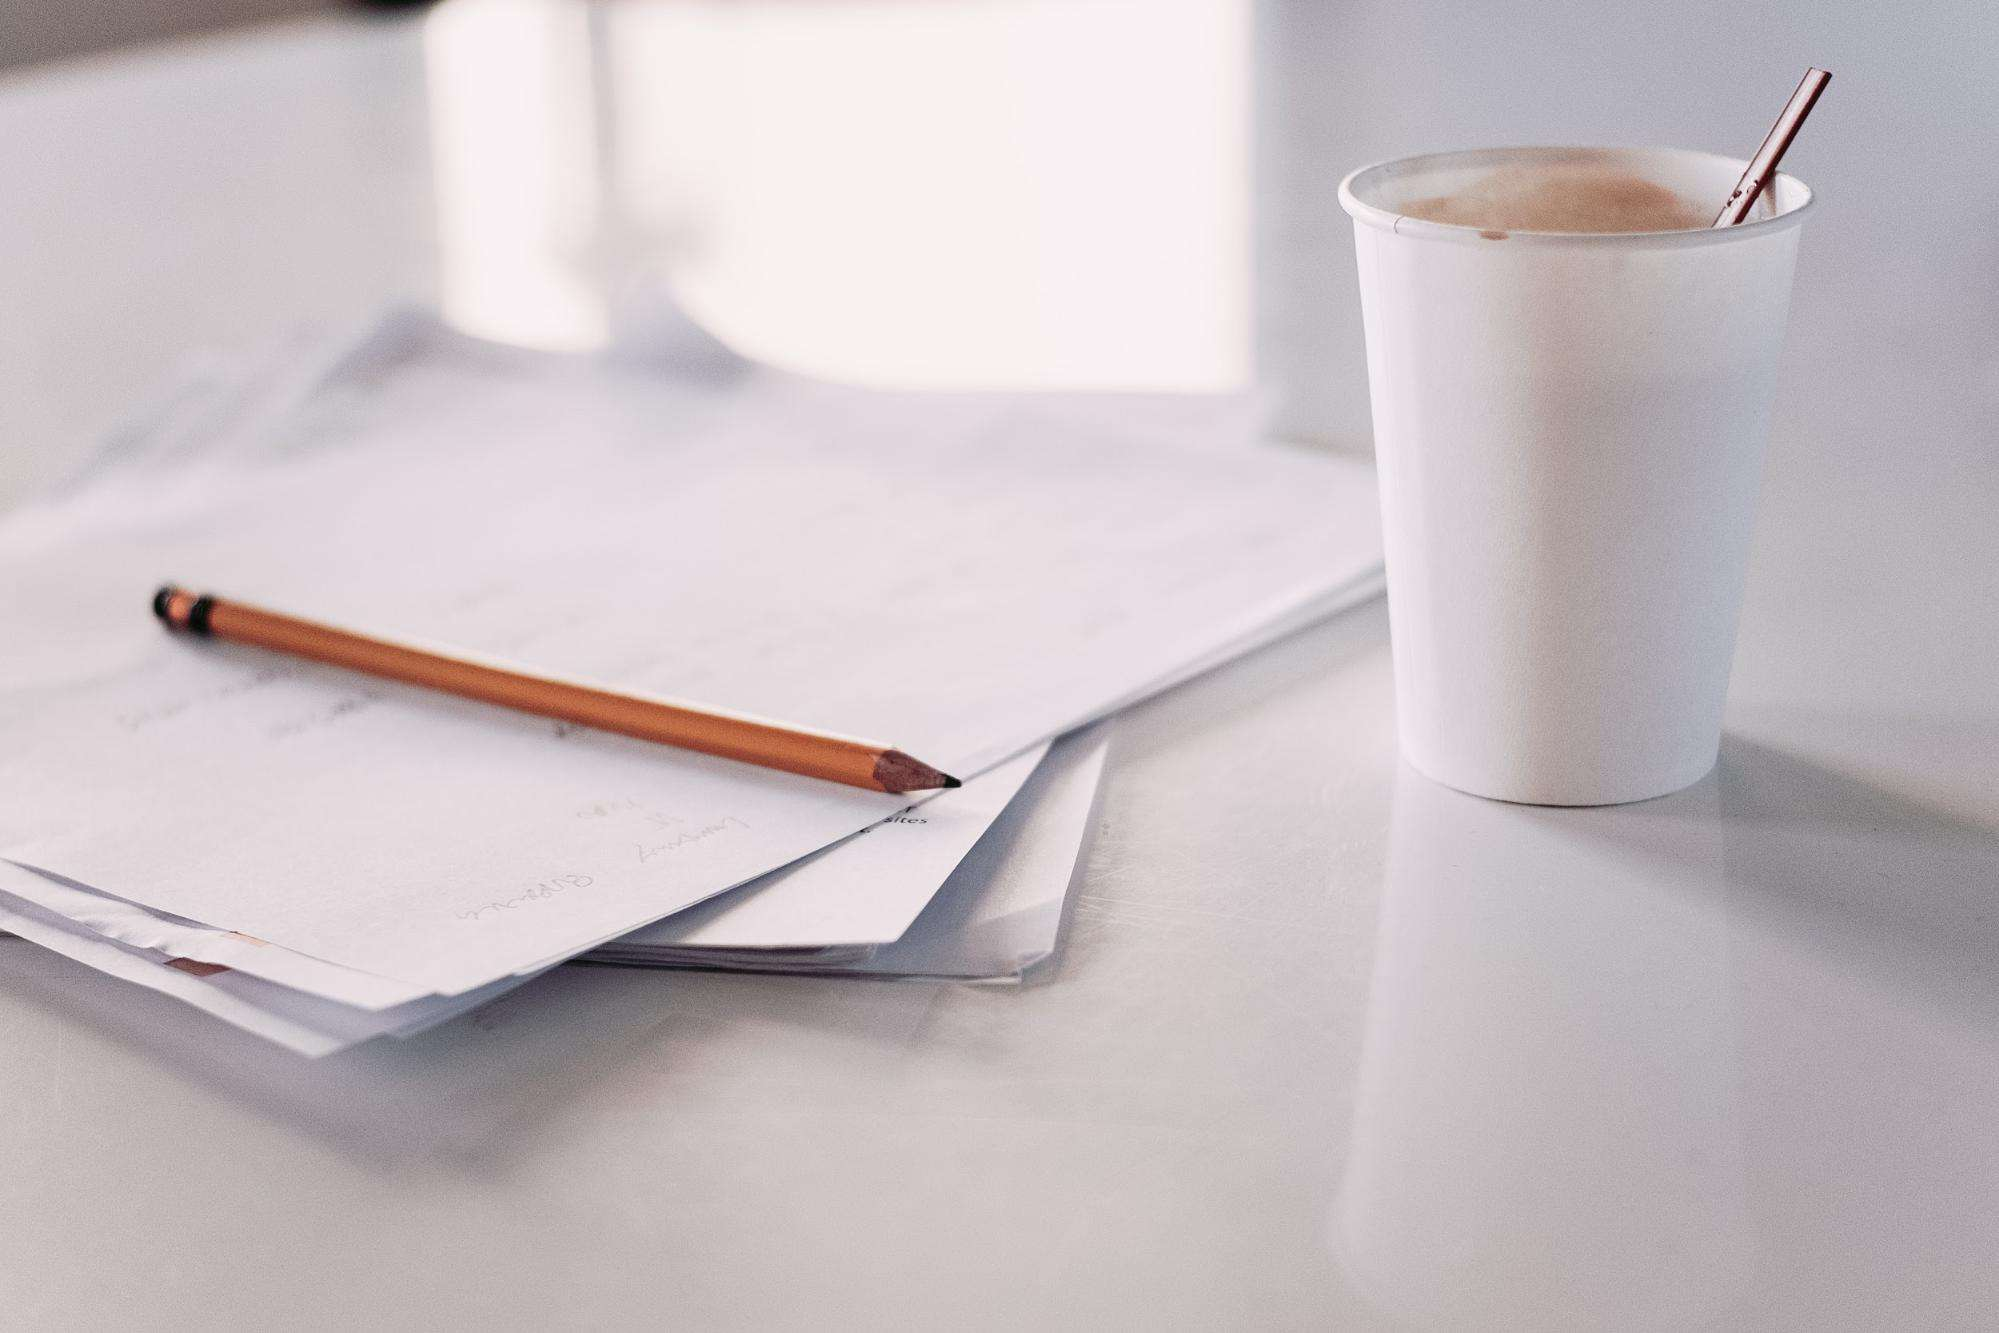 Papers on a desk with coffee